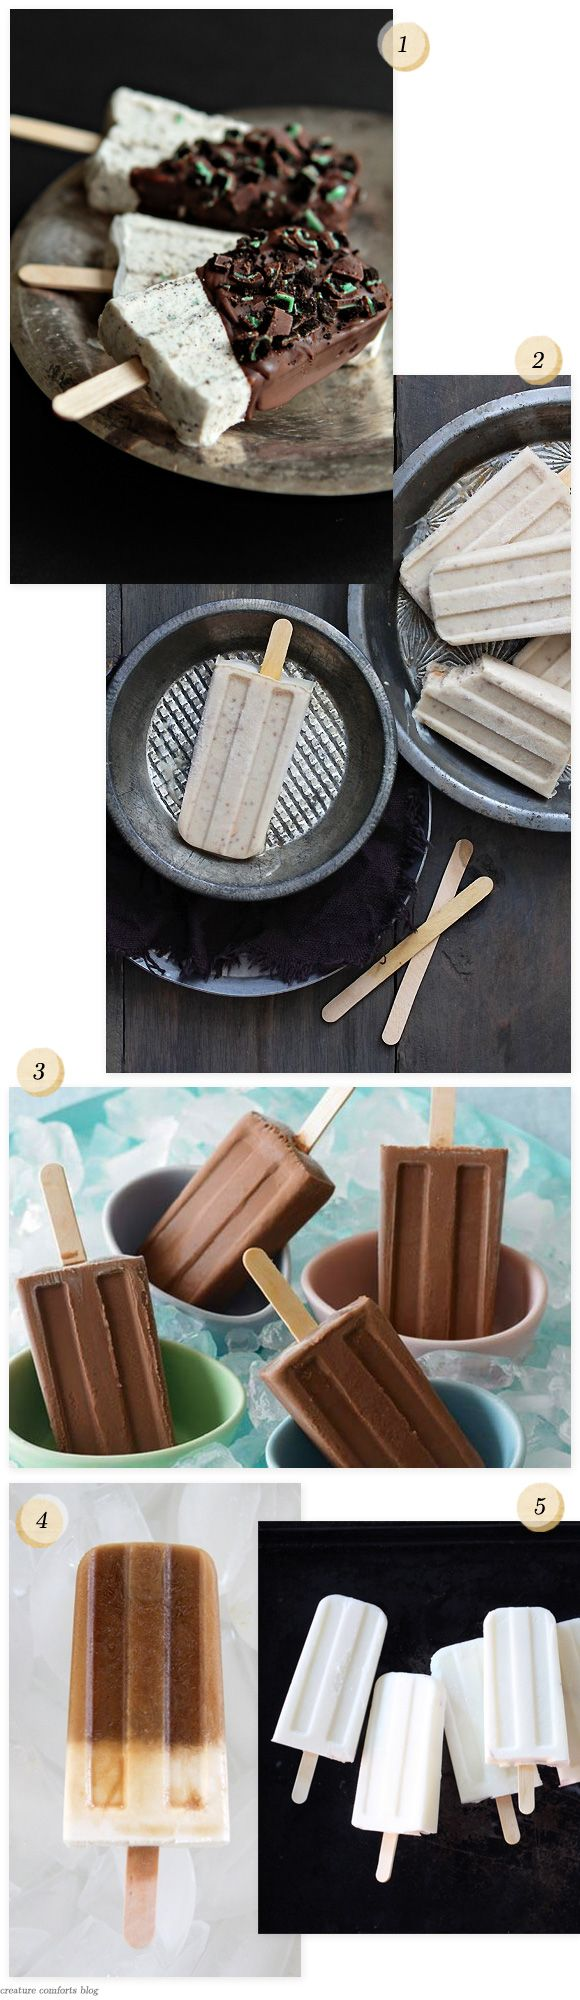 Pinterest Picks: Summer PopsicleRoundup - Home - Creature Comforts - daily inspiration, style, diy projects + freebies